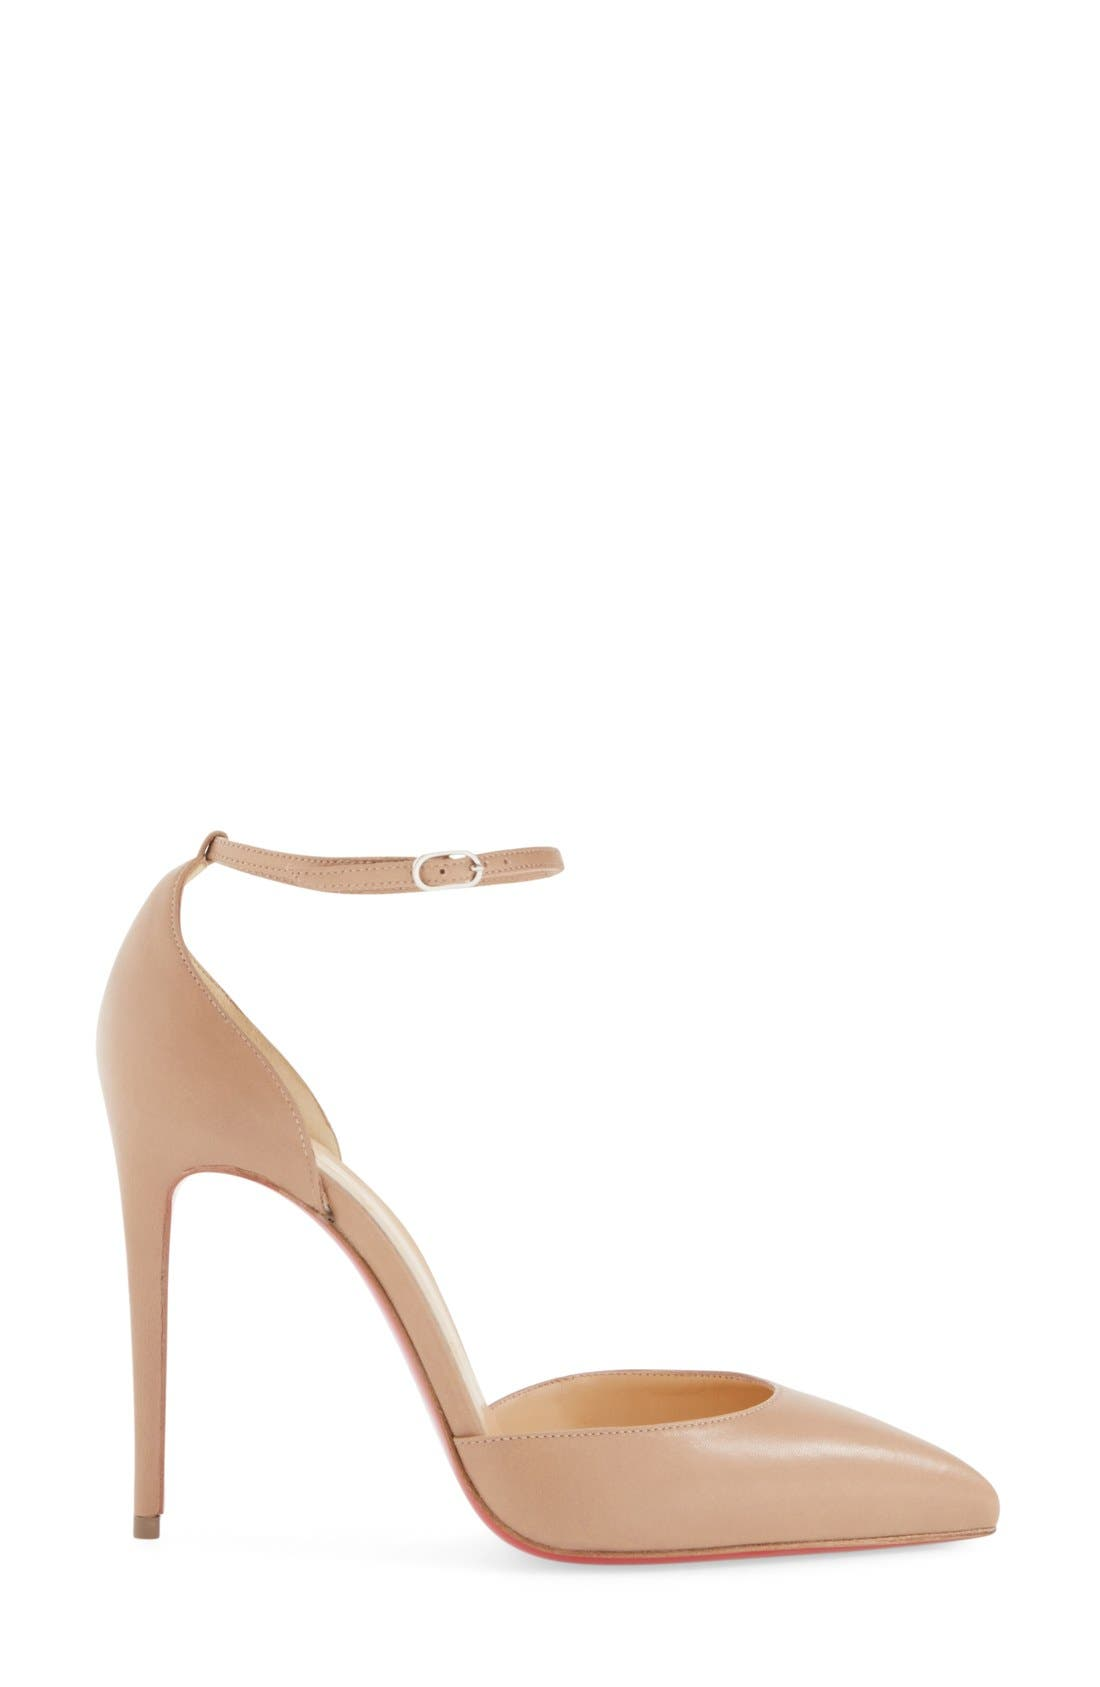 Uptown Ankle Strap Pointy Toe Pump,                             Alternate thumbnail 4, color,                             250